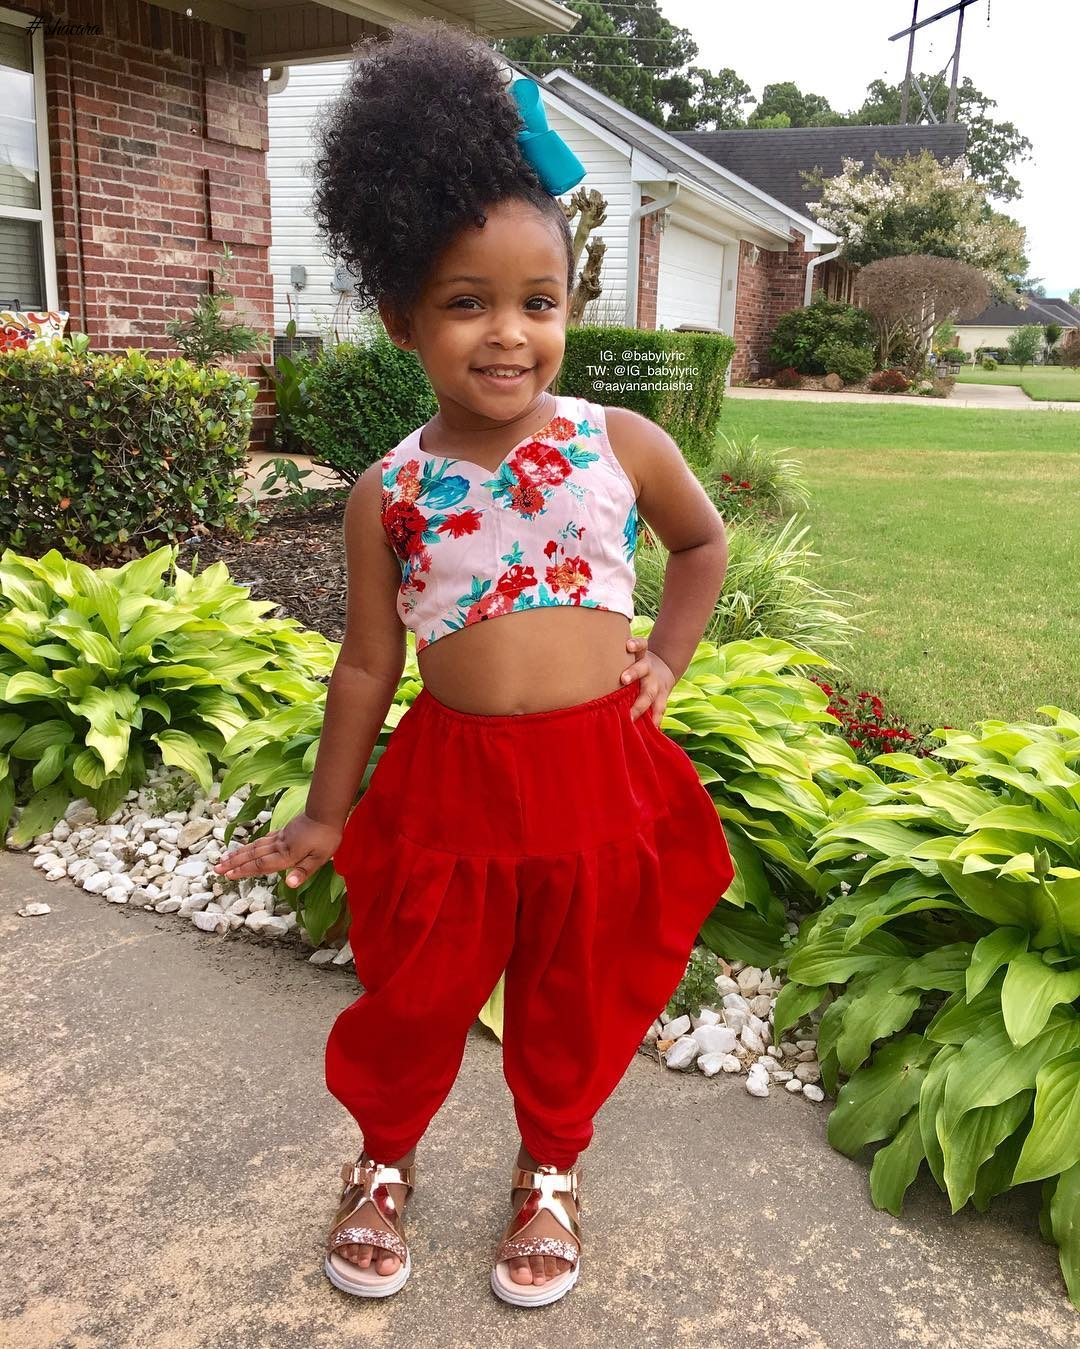 BEAUTIFUL BABYLYRIC IS OUR KIDDIES STYLE CRUSH!